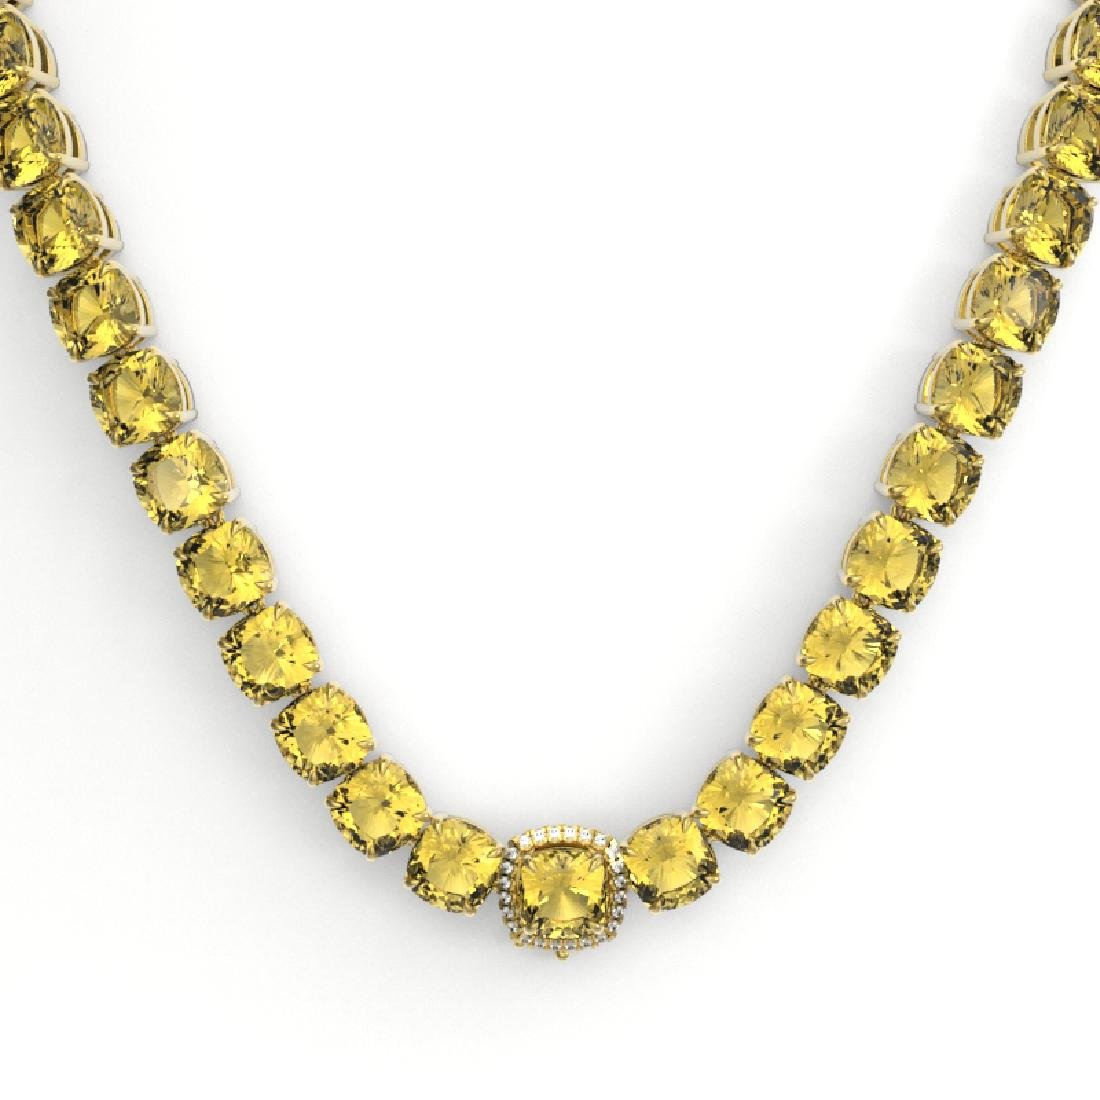 87 CTW Citrine & VS/SI Diamond Halo Micro Pave Necklace - 2